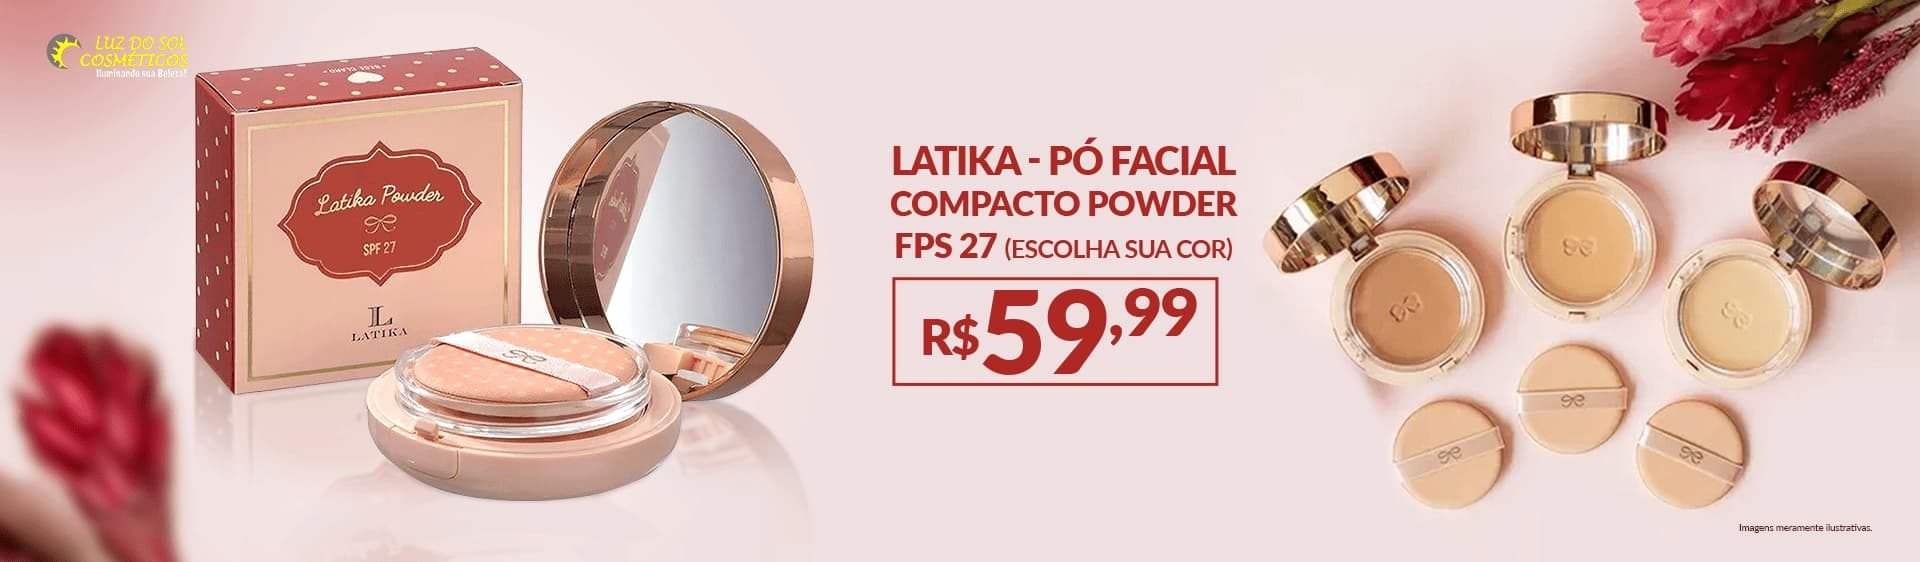 Latika Pó Facial Compacto Powder